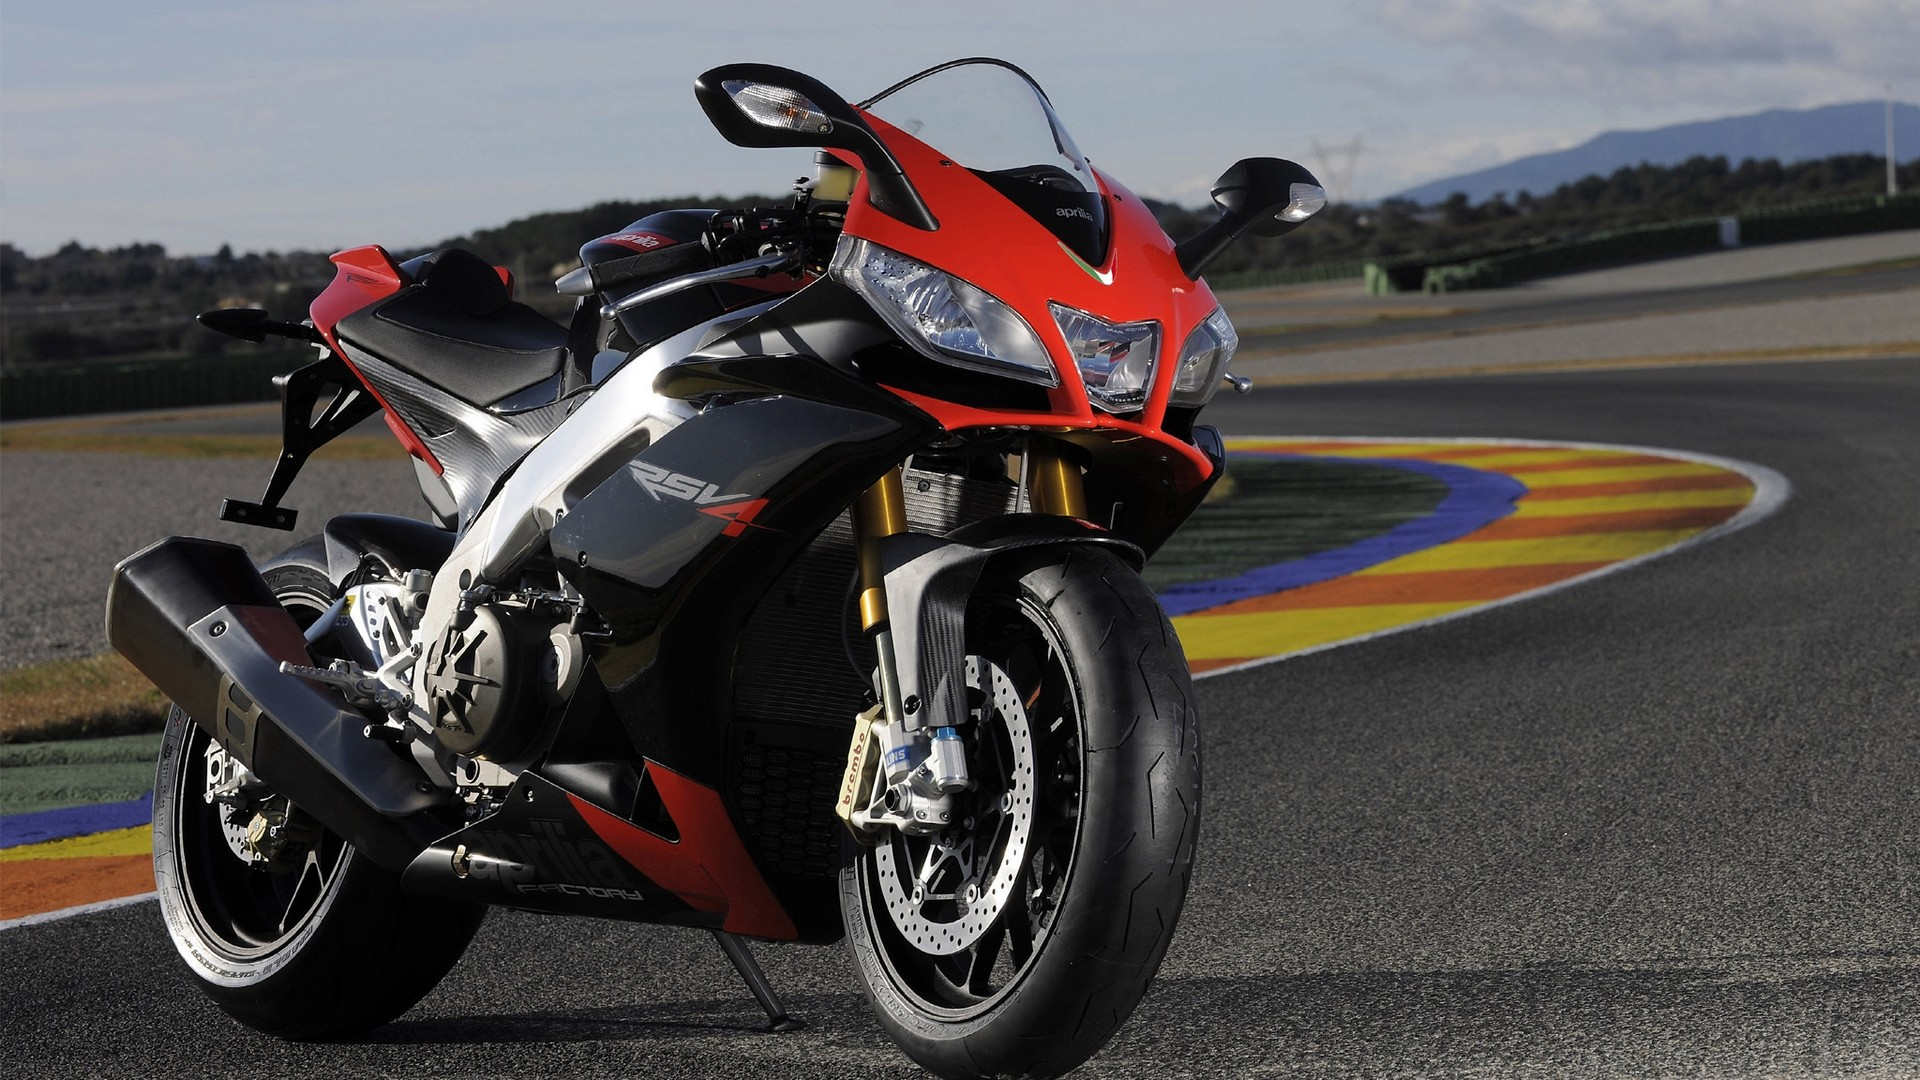 480x854 Aprilia RSV4 Android One HD 4k Wallpapers, Images